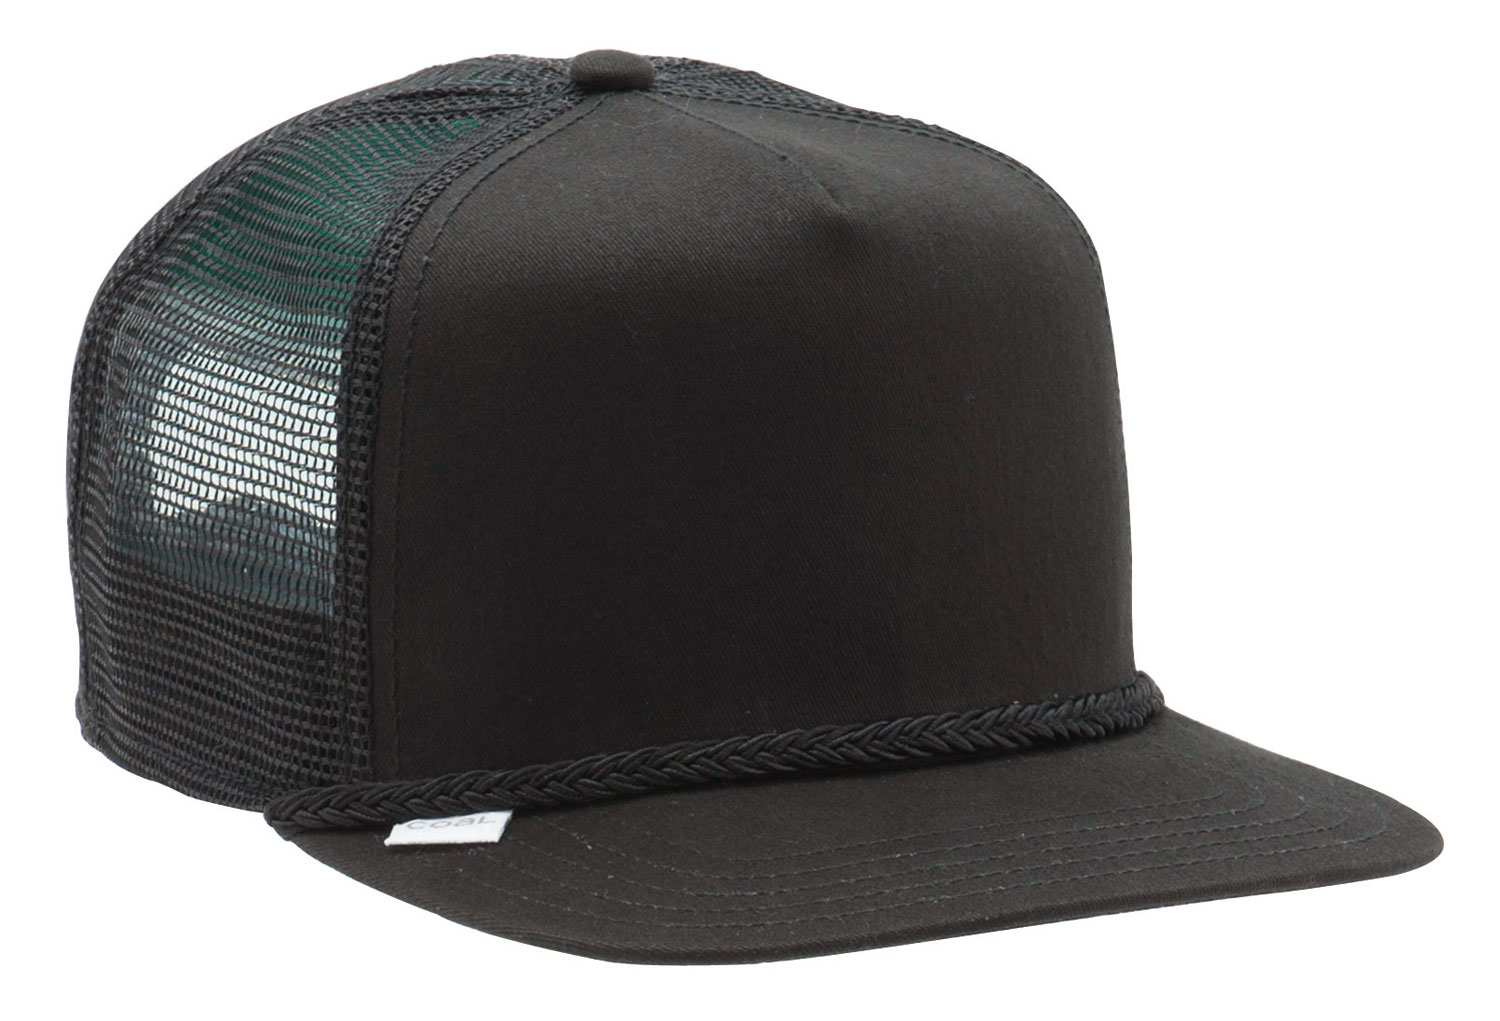 Our original, built from the ground up, snap-back trucker with throwback style and classic fit. Unique cording over brim with inset label and screen-print inside. Cotton and poly mesh. - $20.00